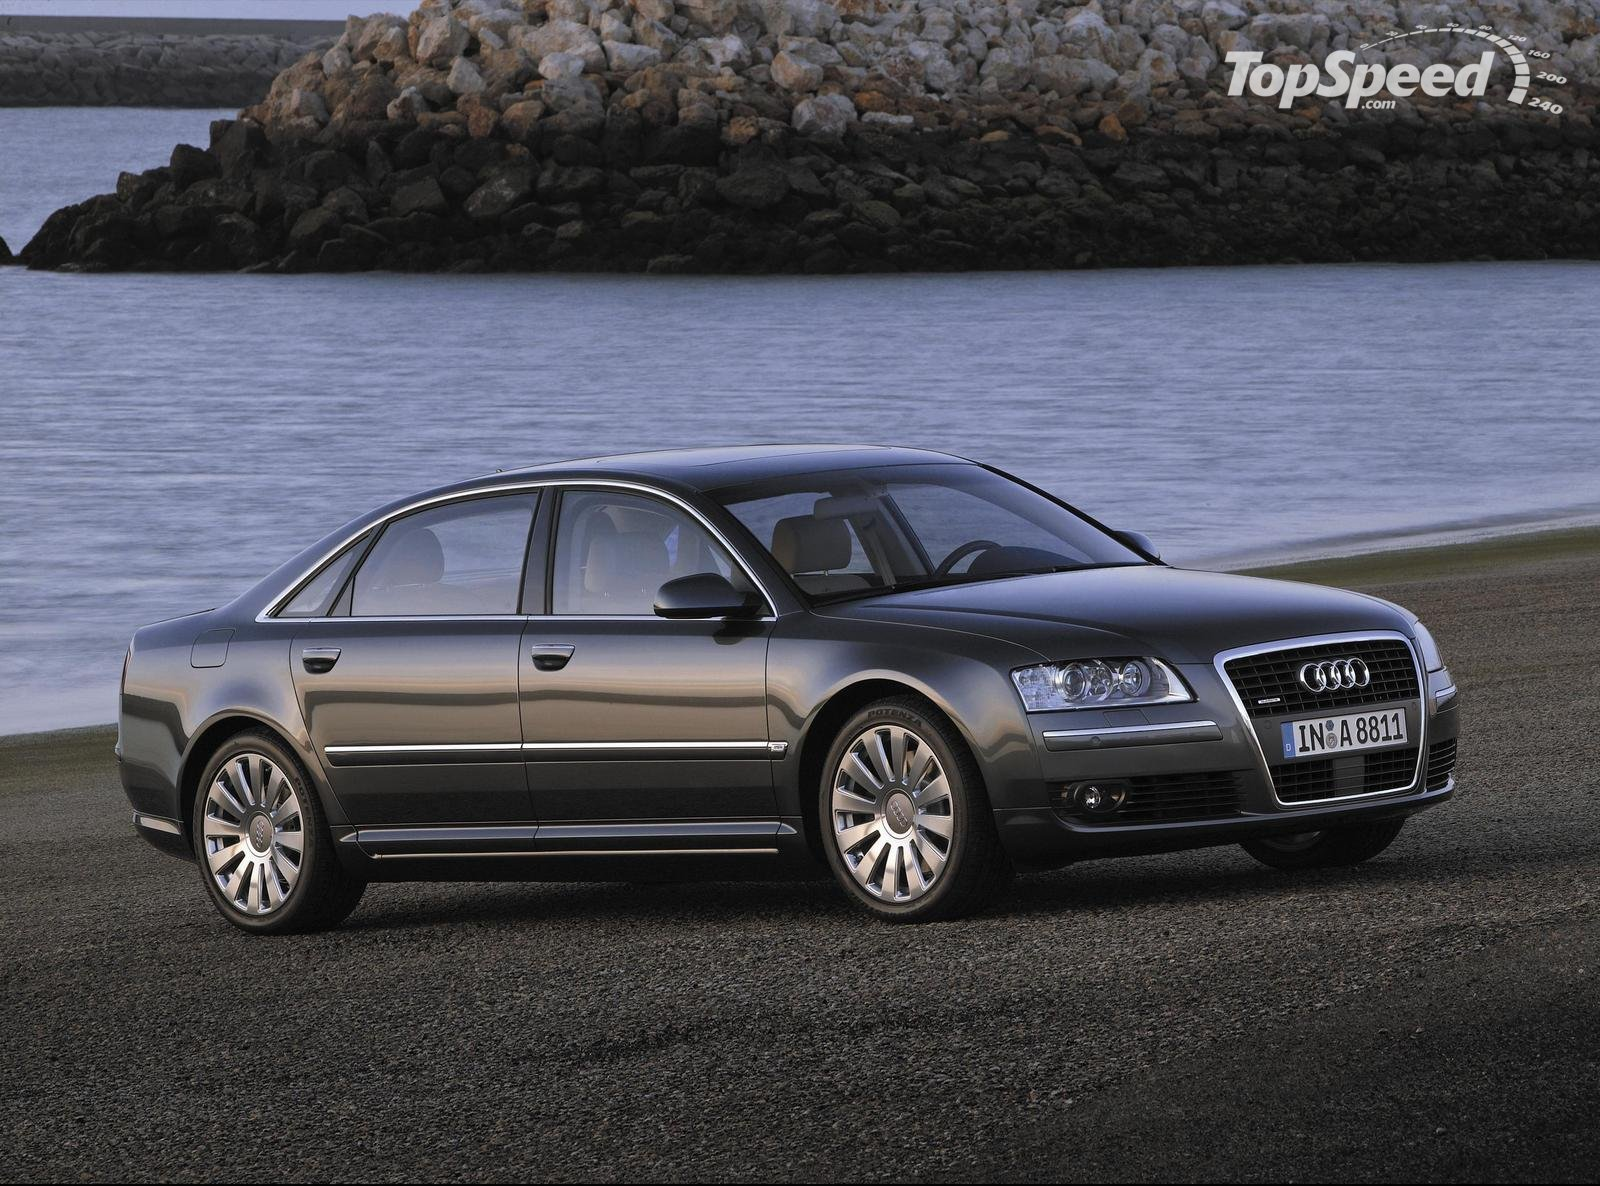 2006 audi a8 long 4e pictures information and specs. Black Bedroom Furniture Sets. Home Design Ideas